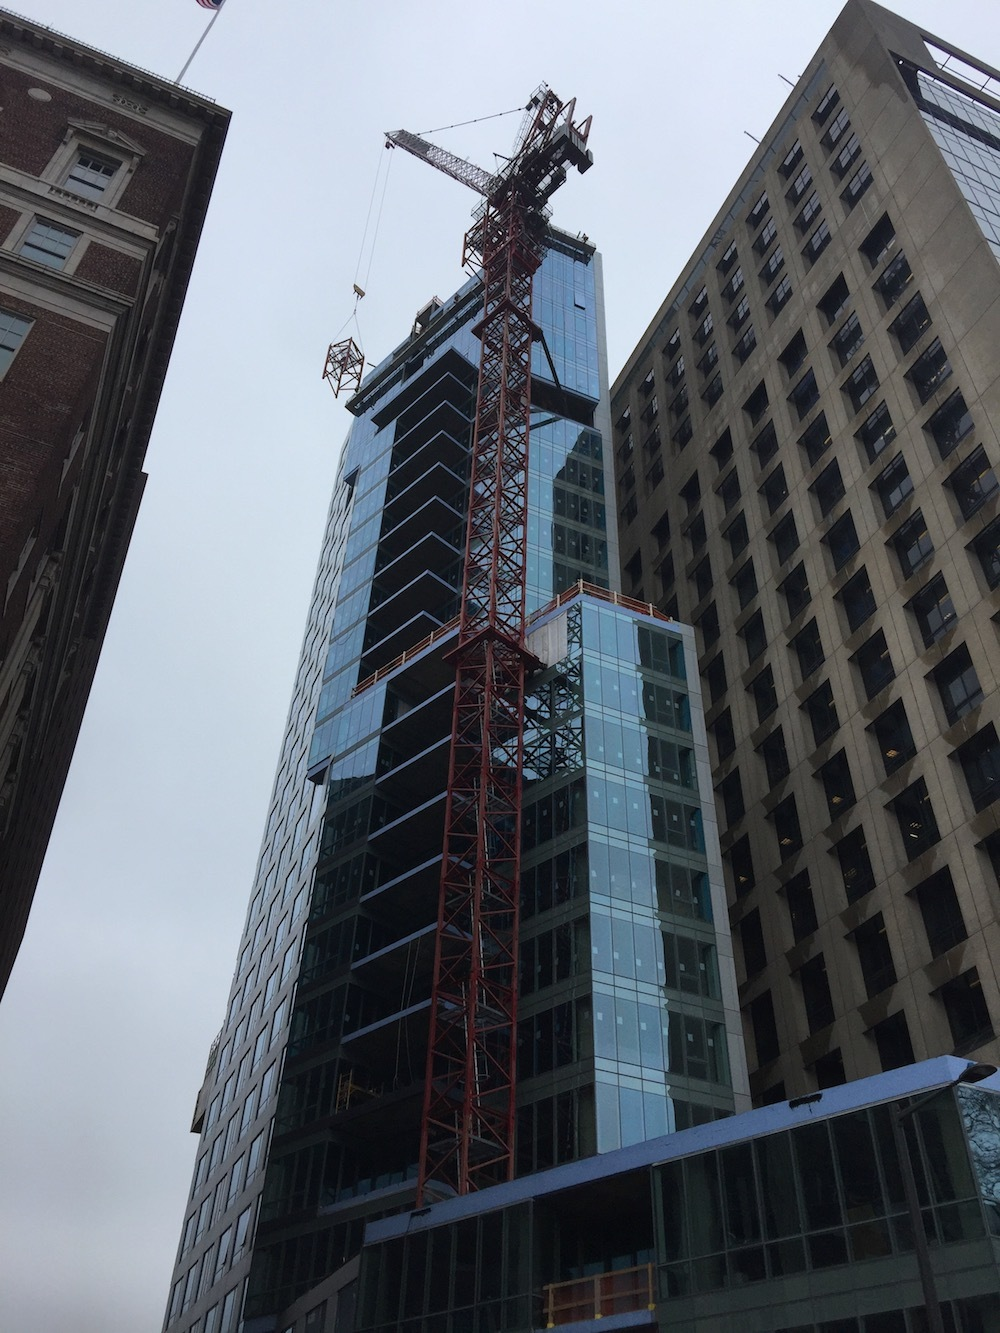 Crane Dismantling 500 Walnut St - March 27, 2017